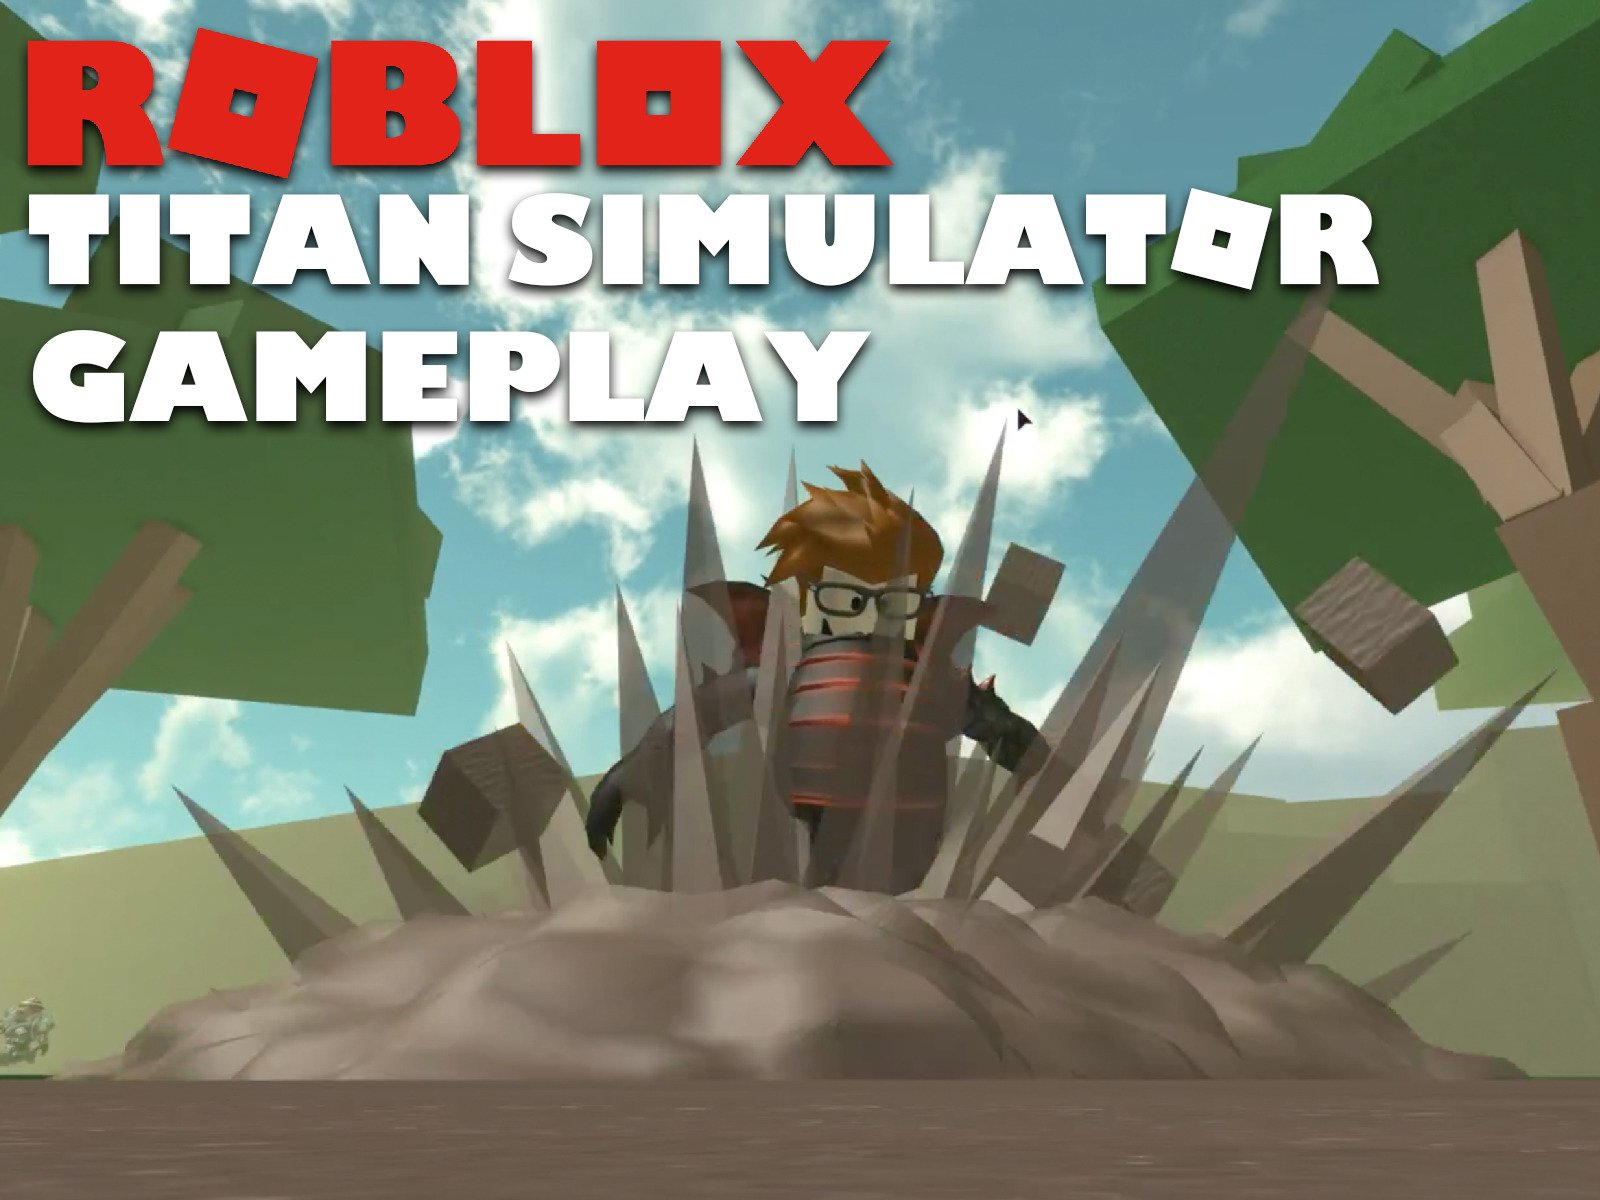 Clip: Roblox Titan Simulator Gameplay